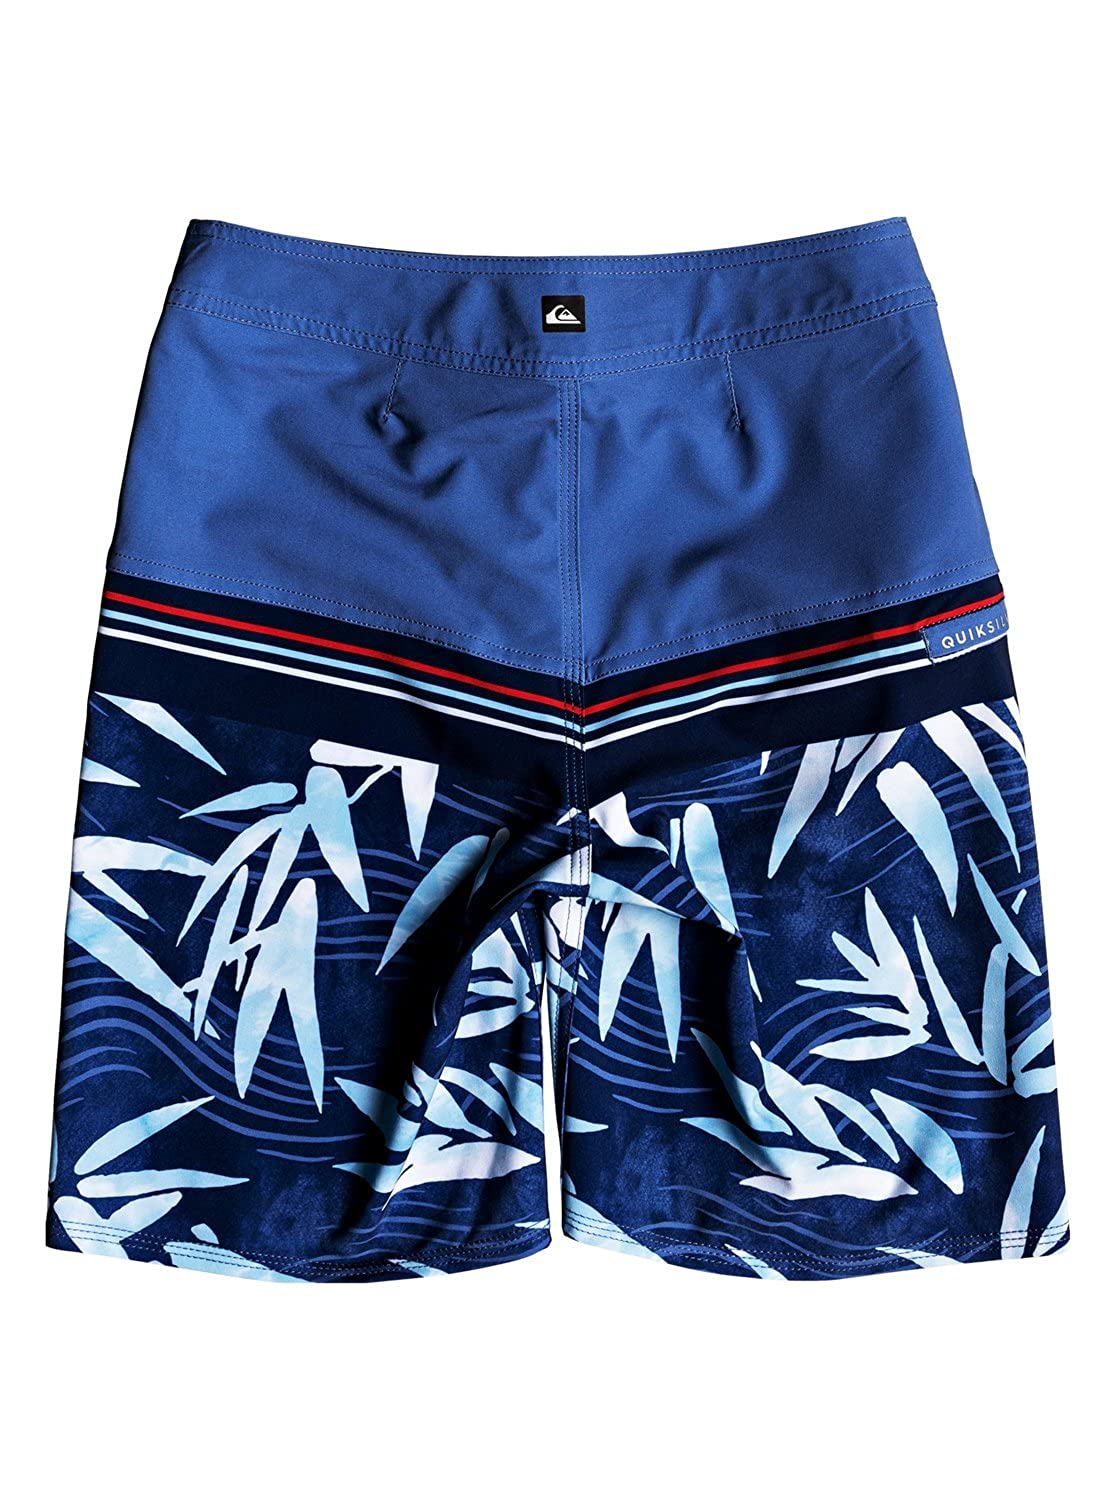 Quiksilver Boys Big Highline Zen Division Youth 18 Swim Trunk Boardshorts